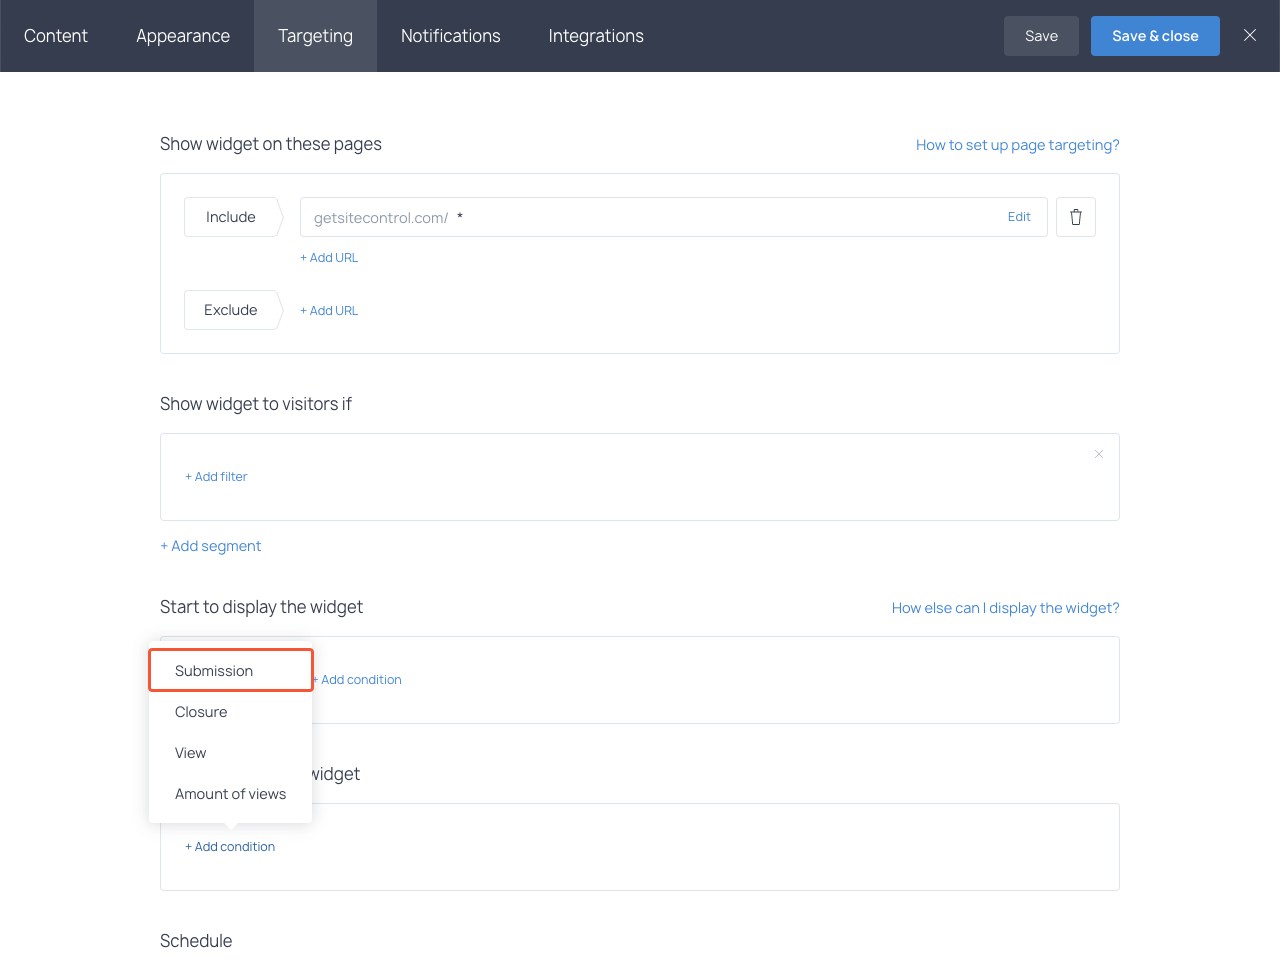 Choosing the Submission option in the Stop to display the widget section